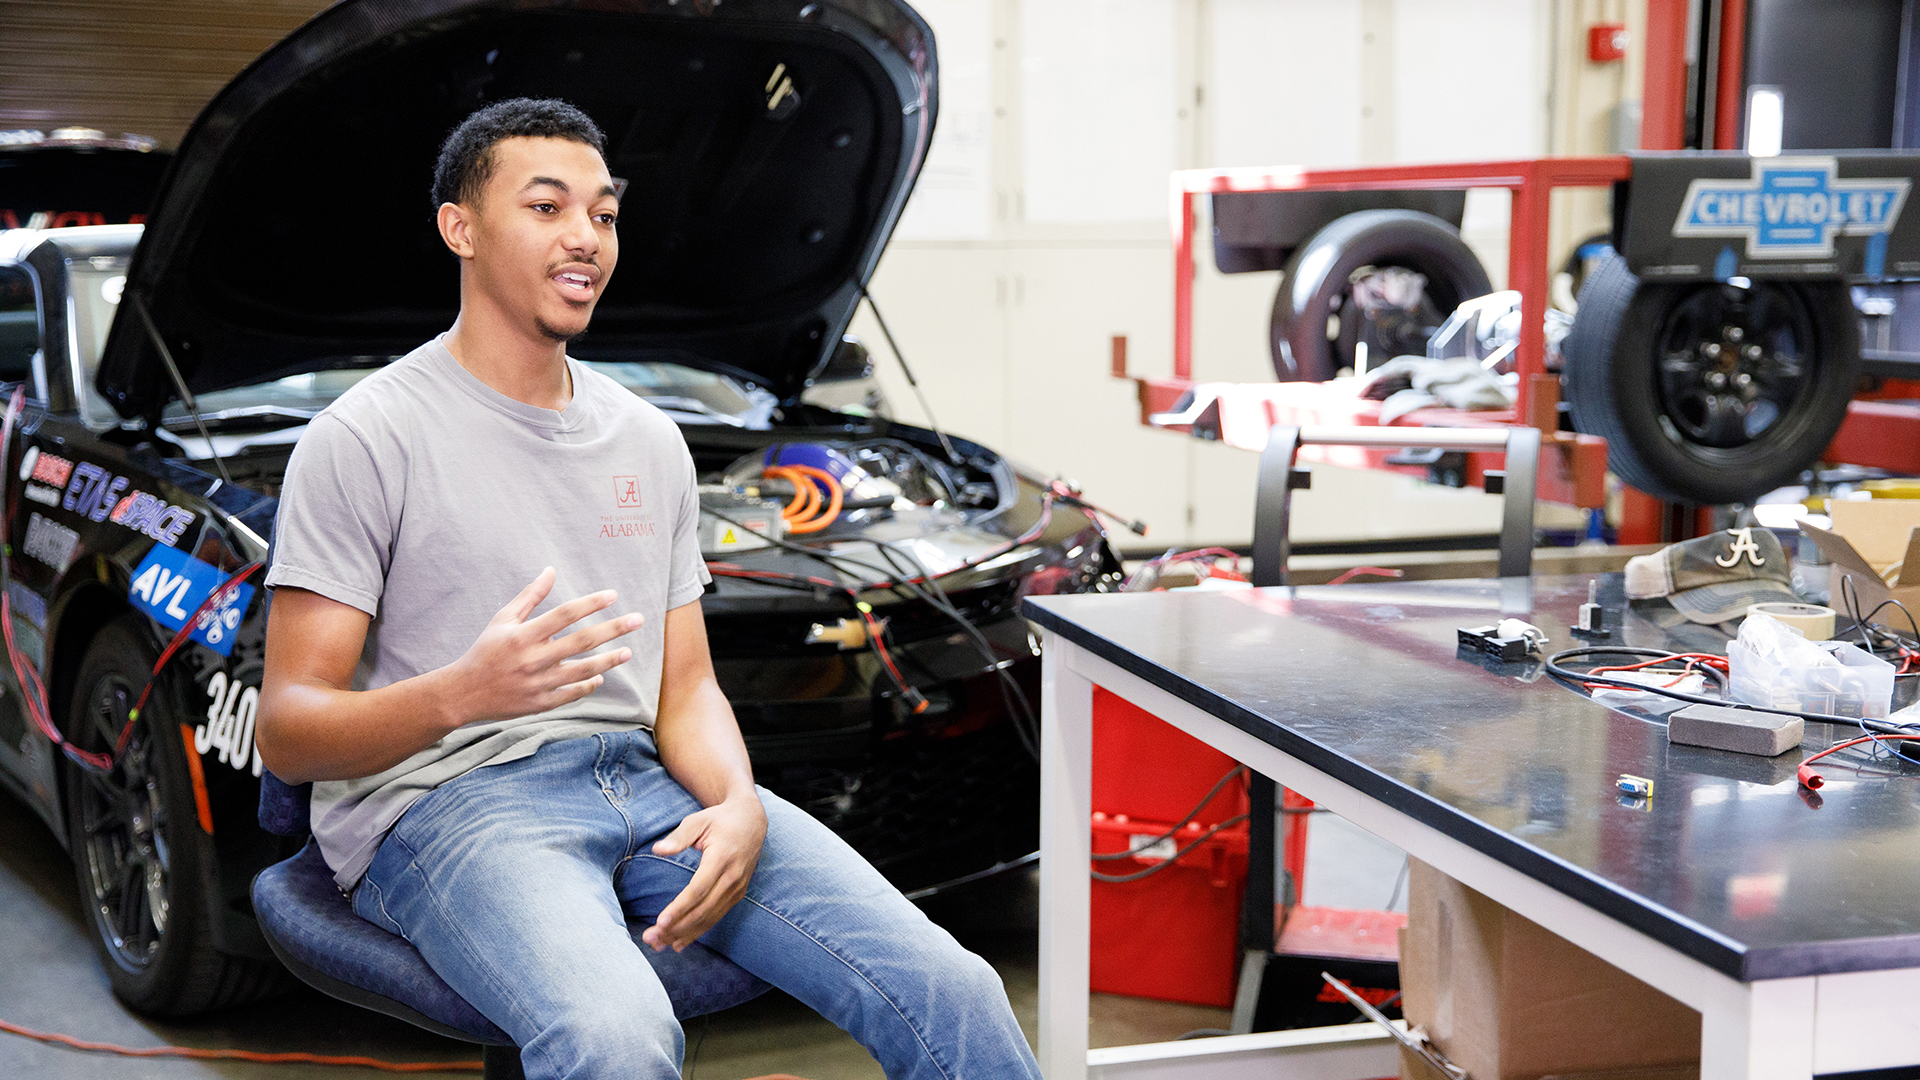 A black student sits beside a car with the engine visible